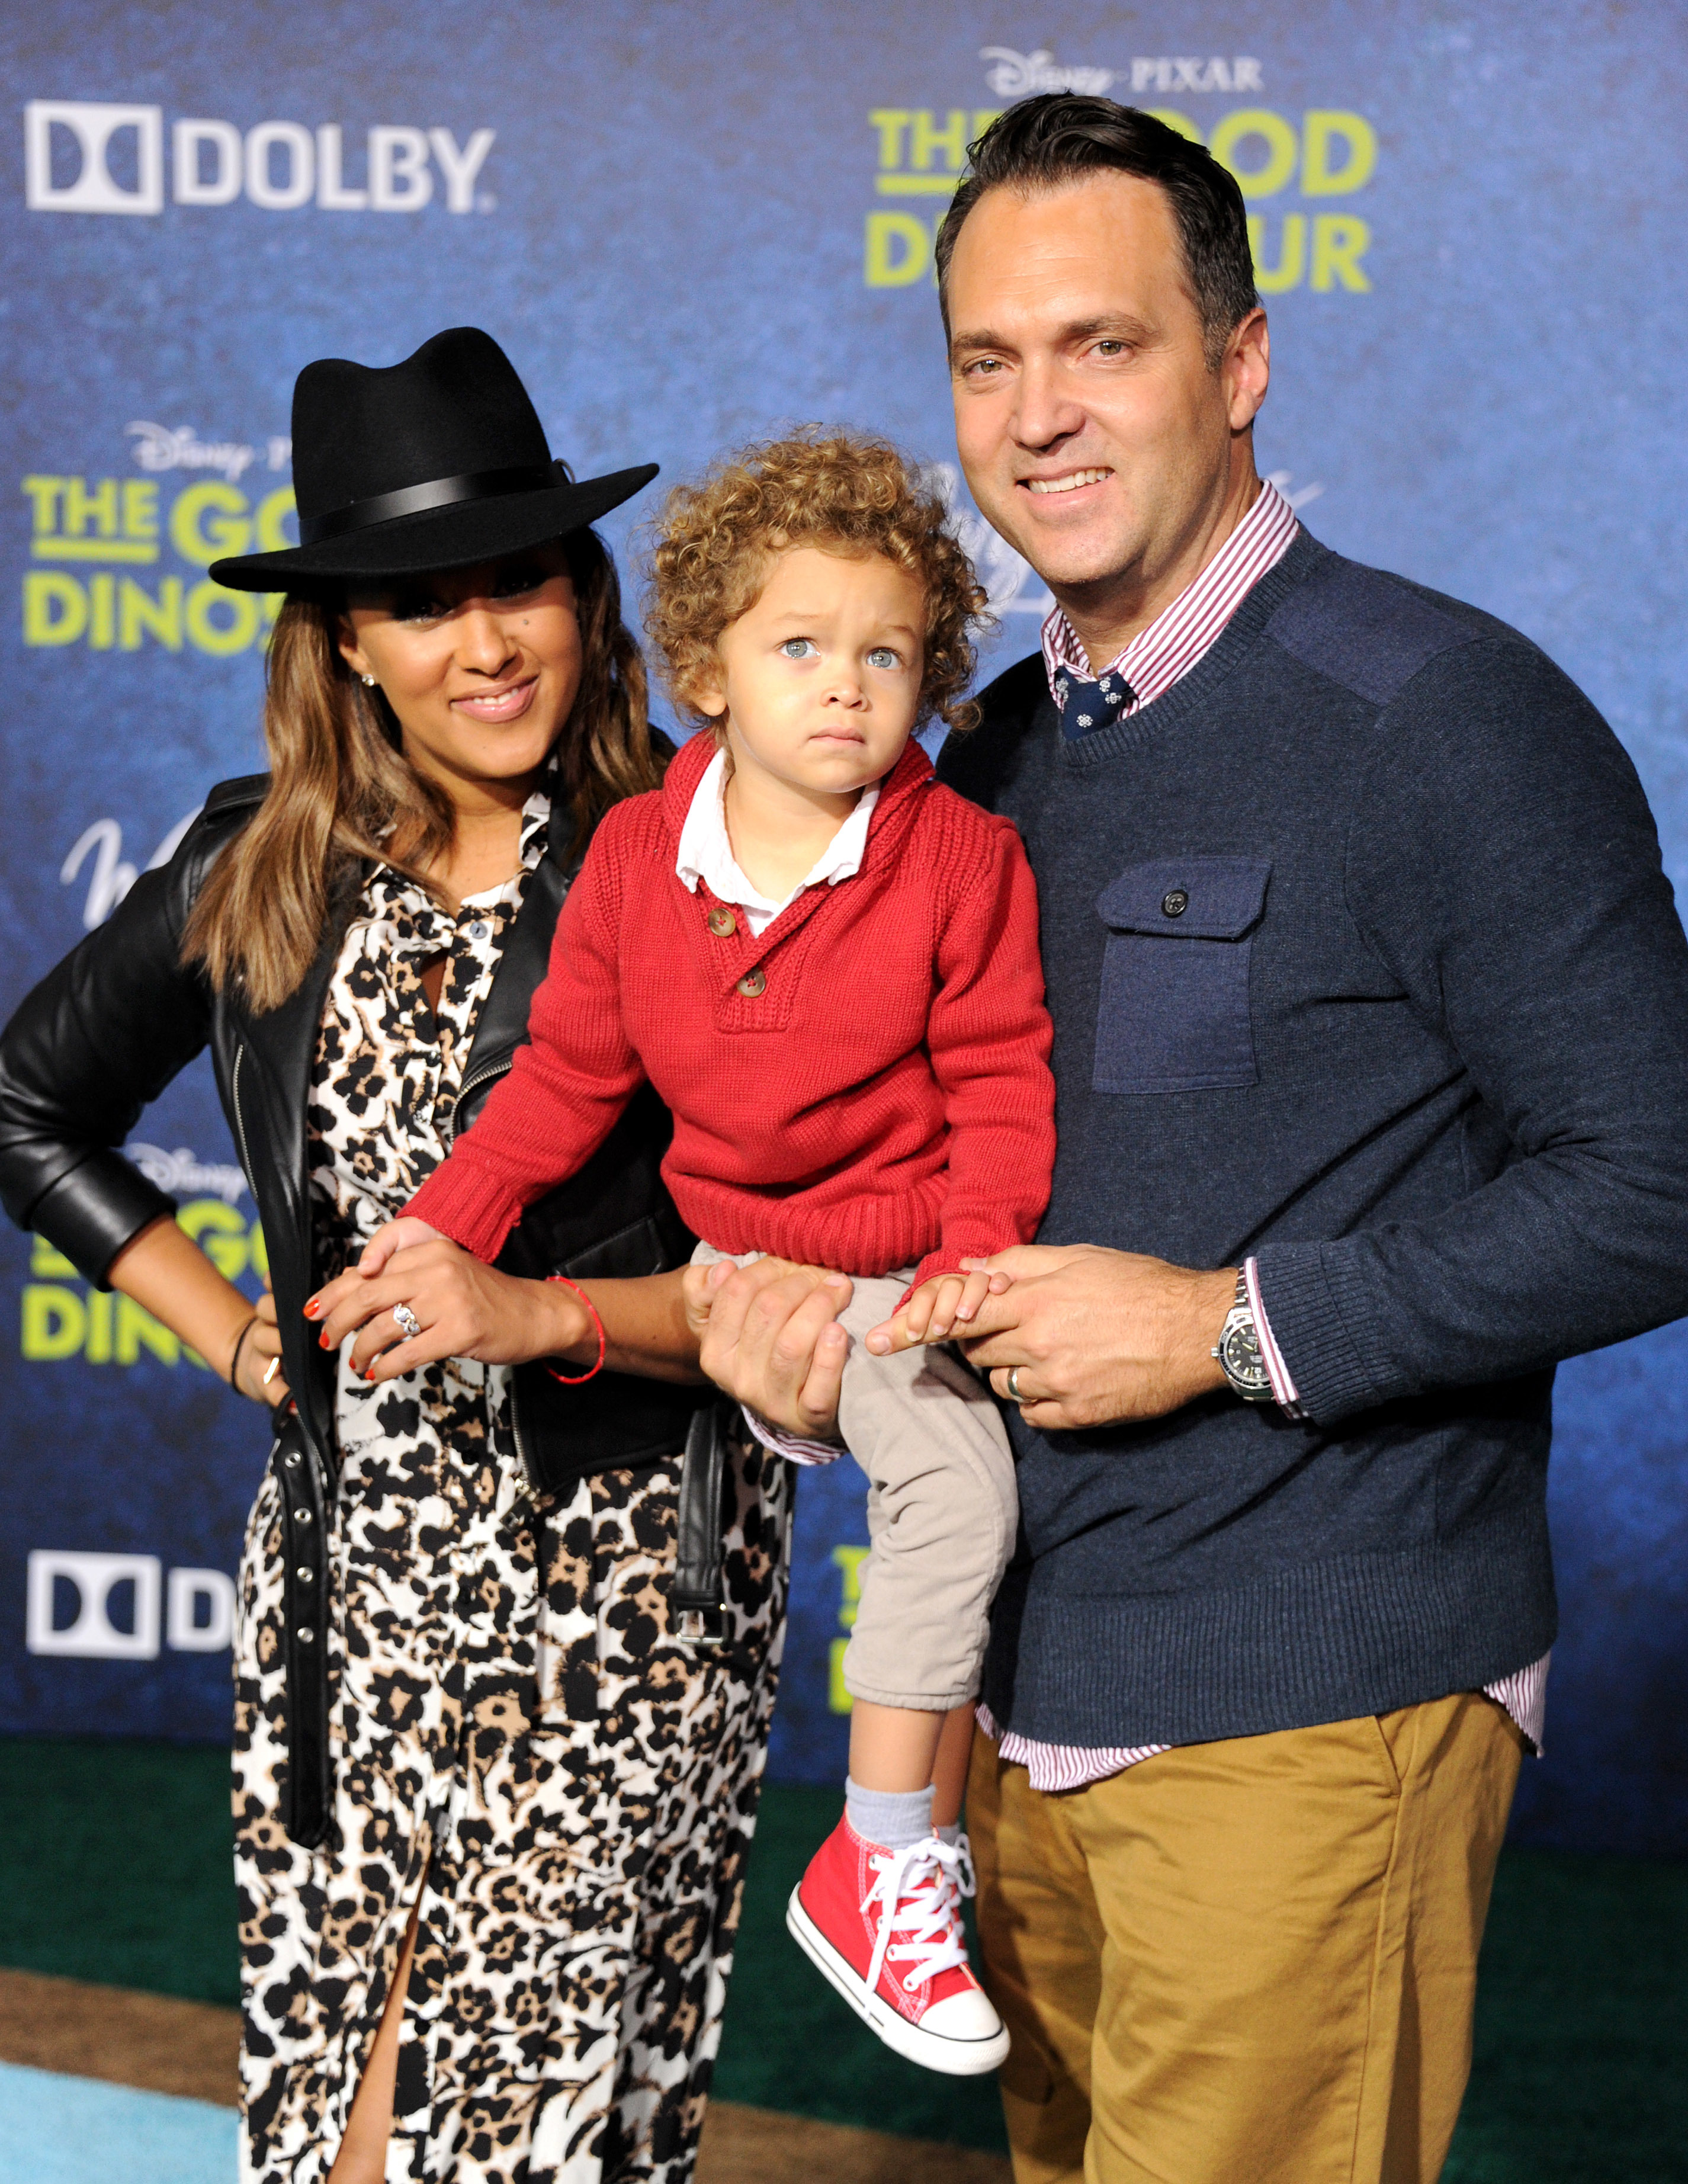 Tamera Mowry on her 4 year old son Aden: